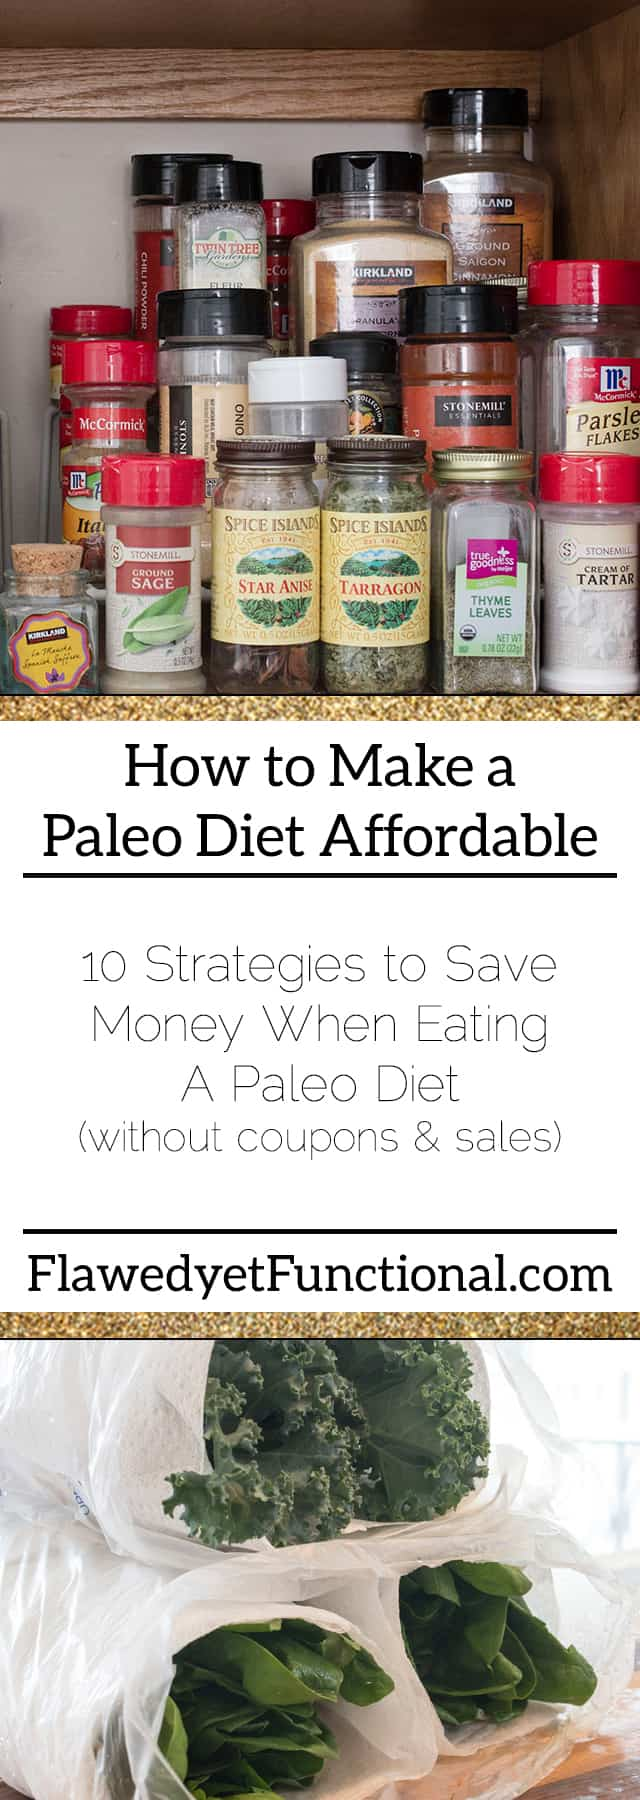 Paleo Diet Affordable